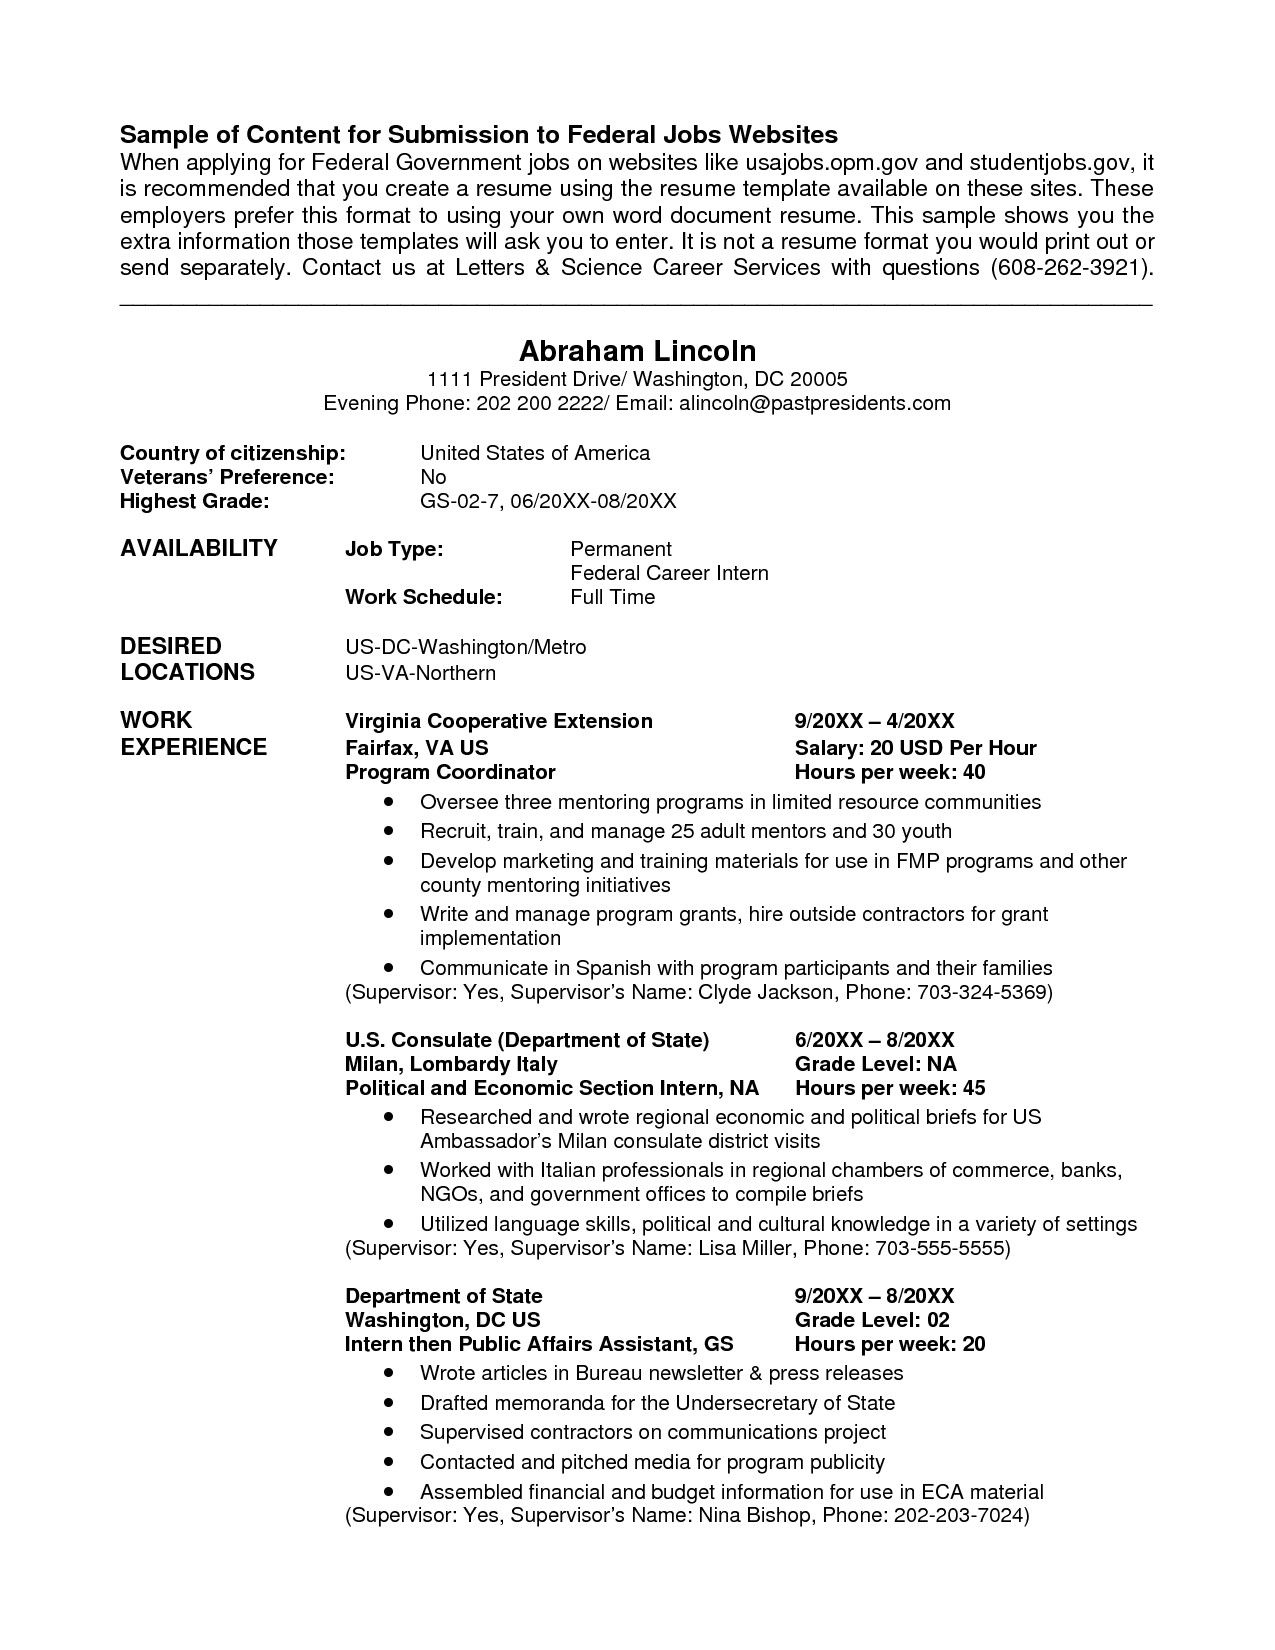 Resume Format For Usa Jobs Resume Format Job Resume Template